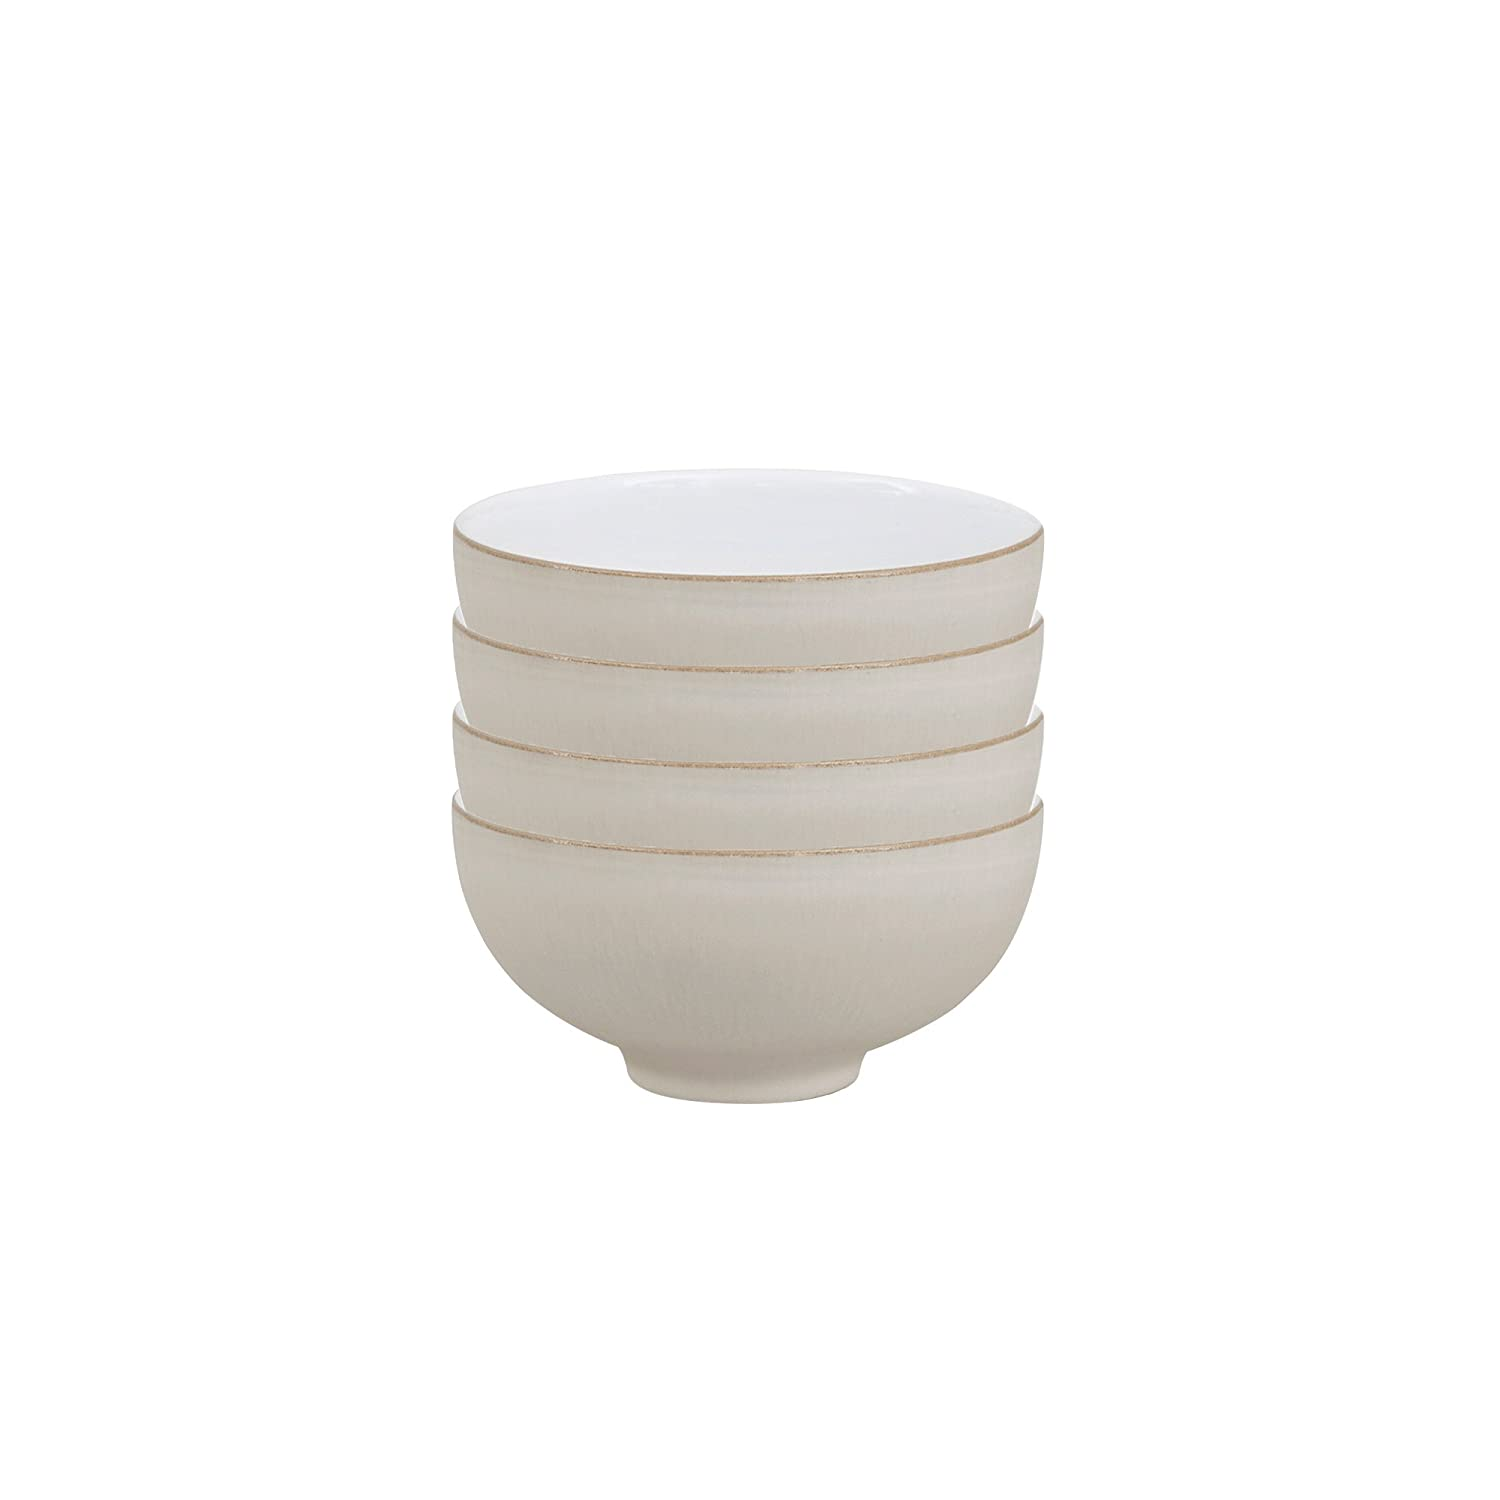 Denby USA Natural Canvas 4PC Placesetting CNV-100T